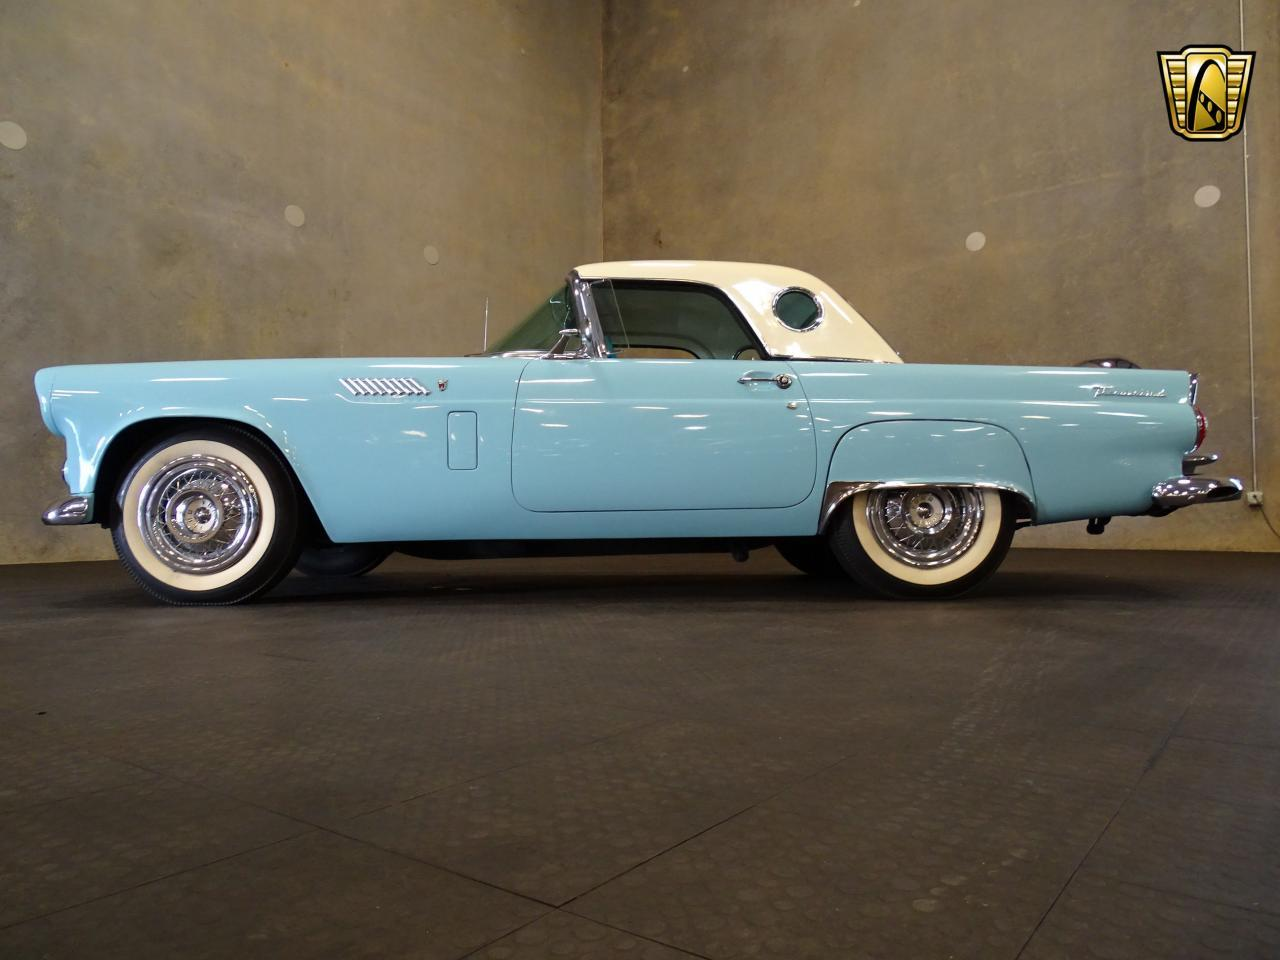 Large Picture of 1956 Ford Thunderbird located in Florida - $35,995.00 Offered by Gateway Classic Cars - Tampa - LBDH